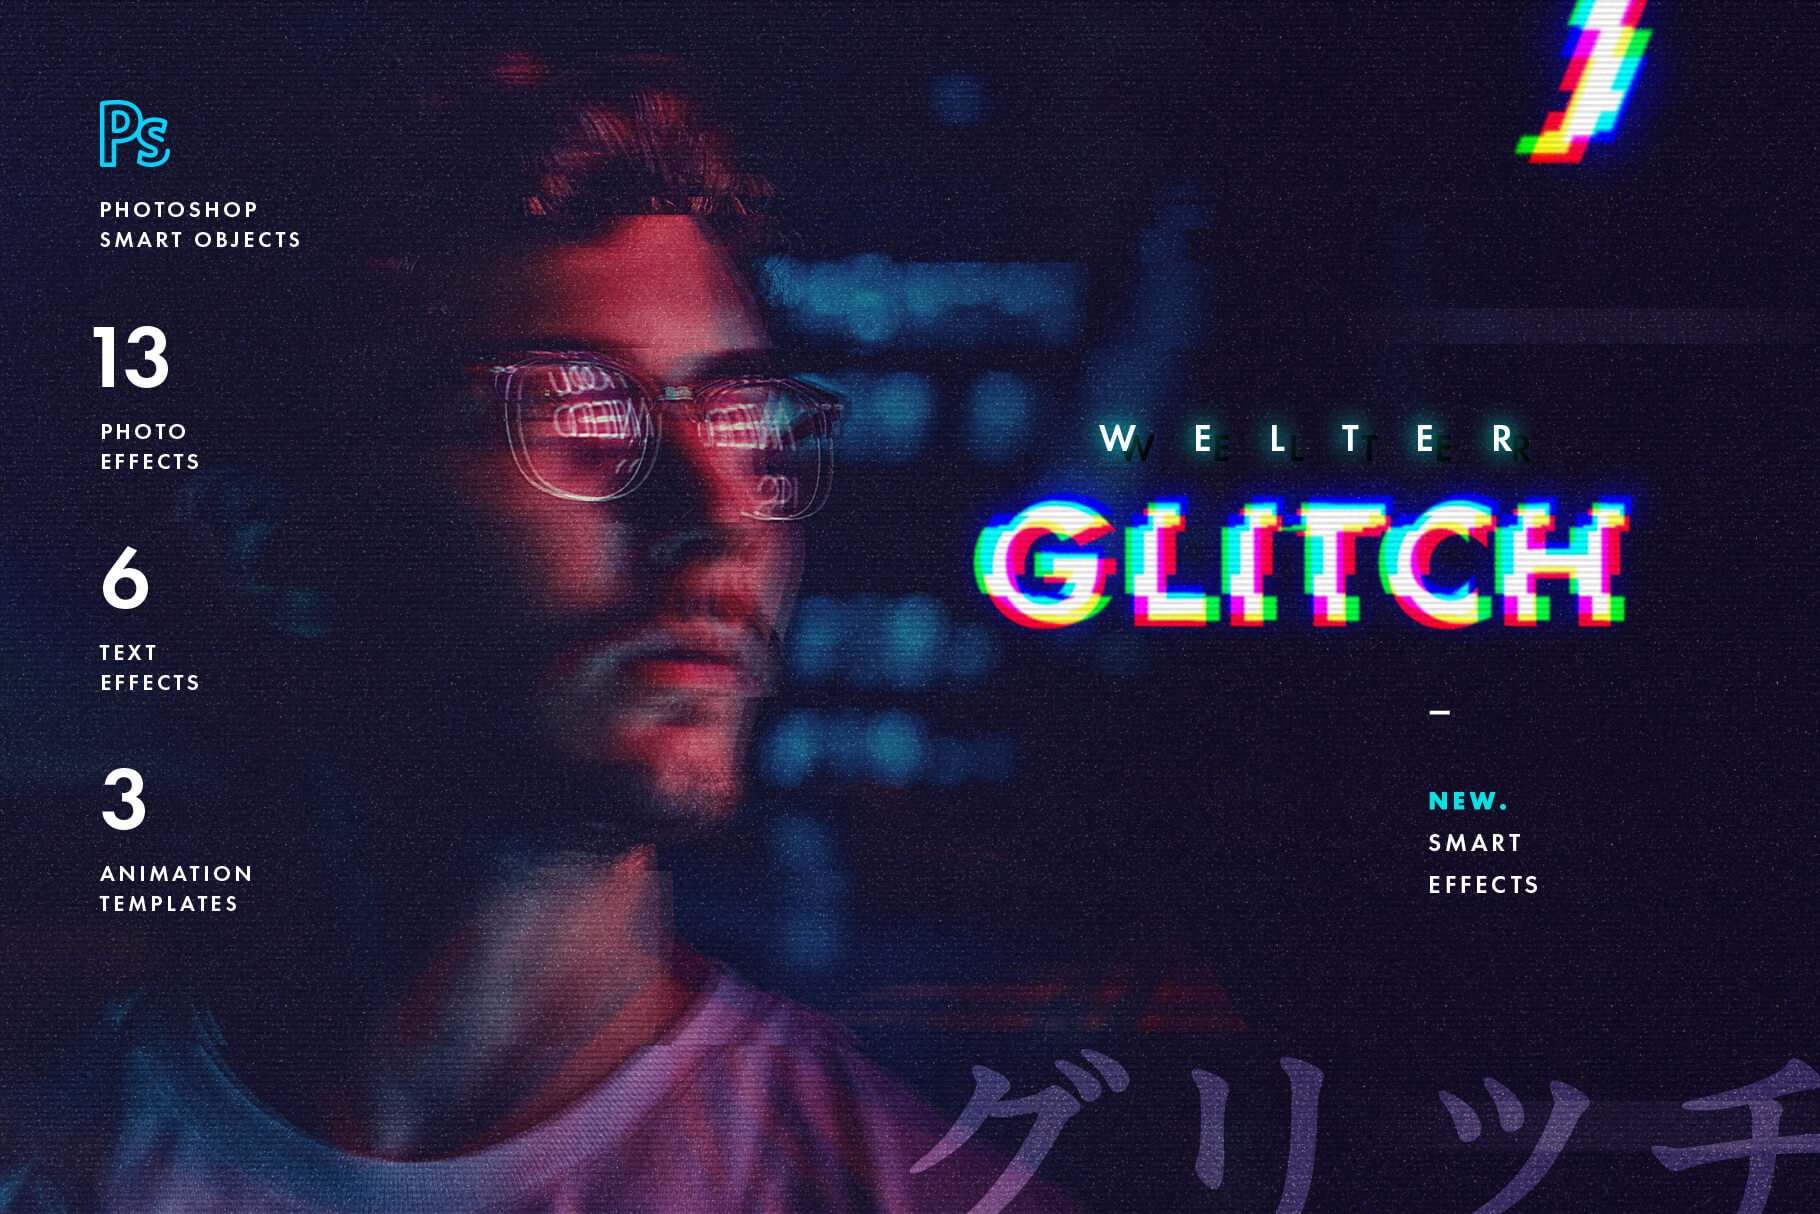 Welter Glitch Effects1